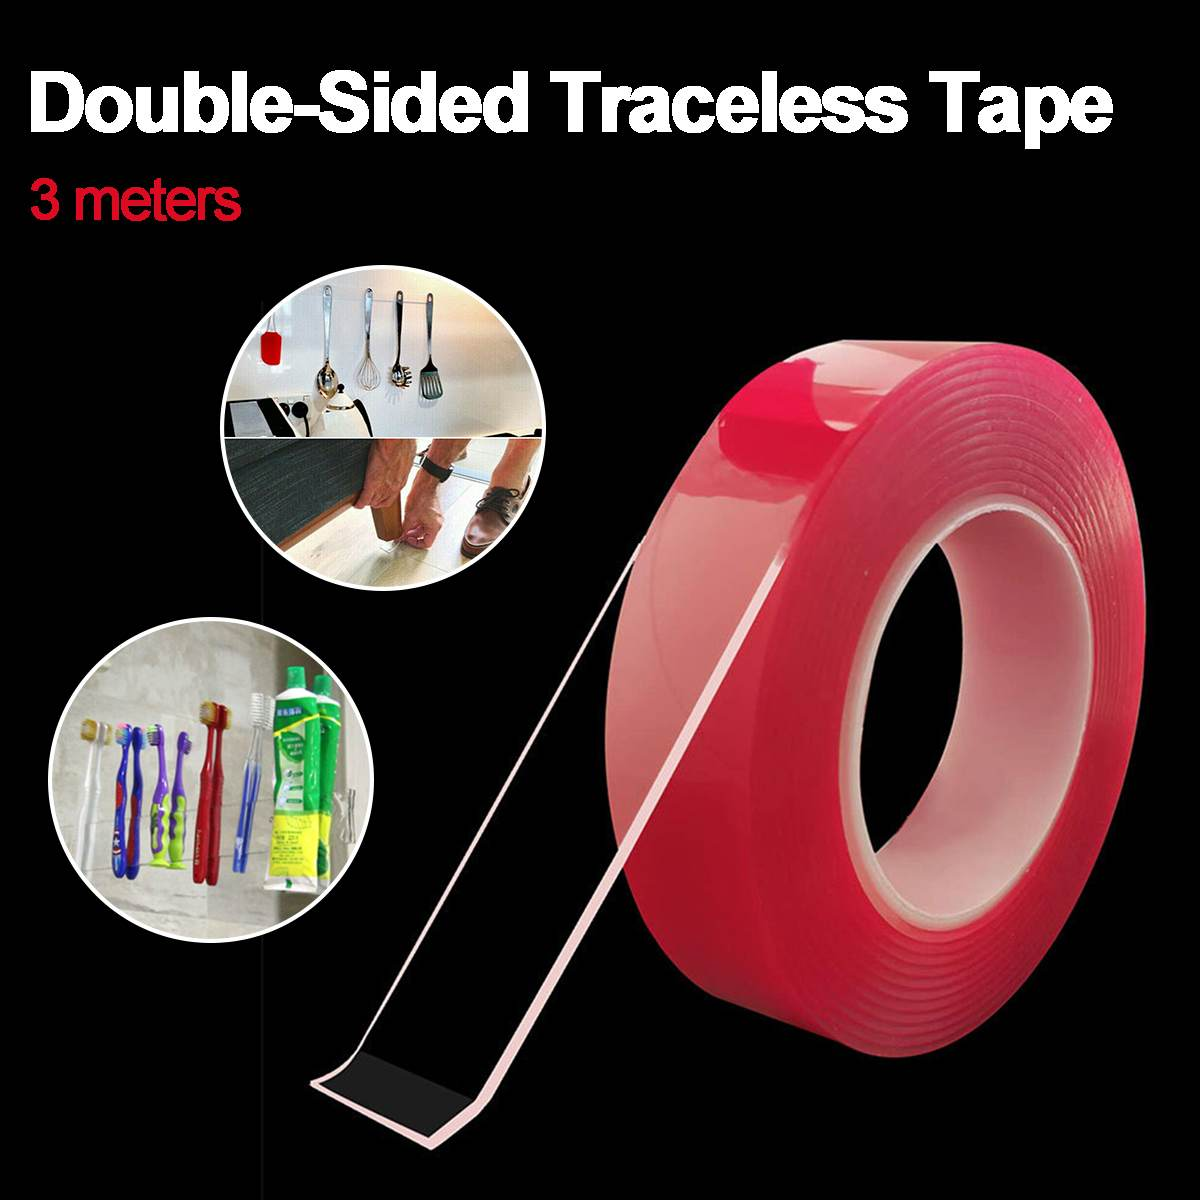 3 Meters Reusable Double Sided Tape Adhesive Heavy Duty Adhesive Loop Transparent Traceless Tape Clear Washable Remove Sticker